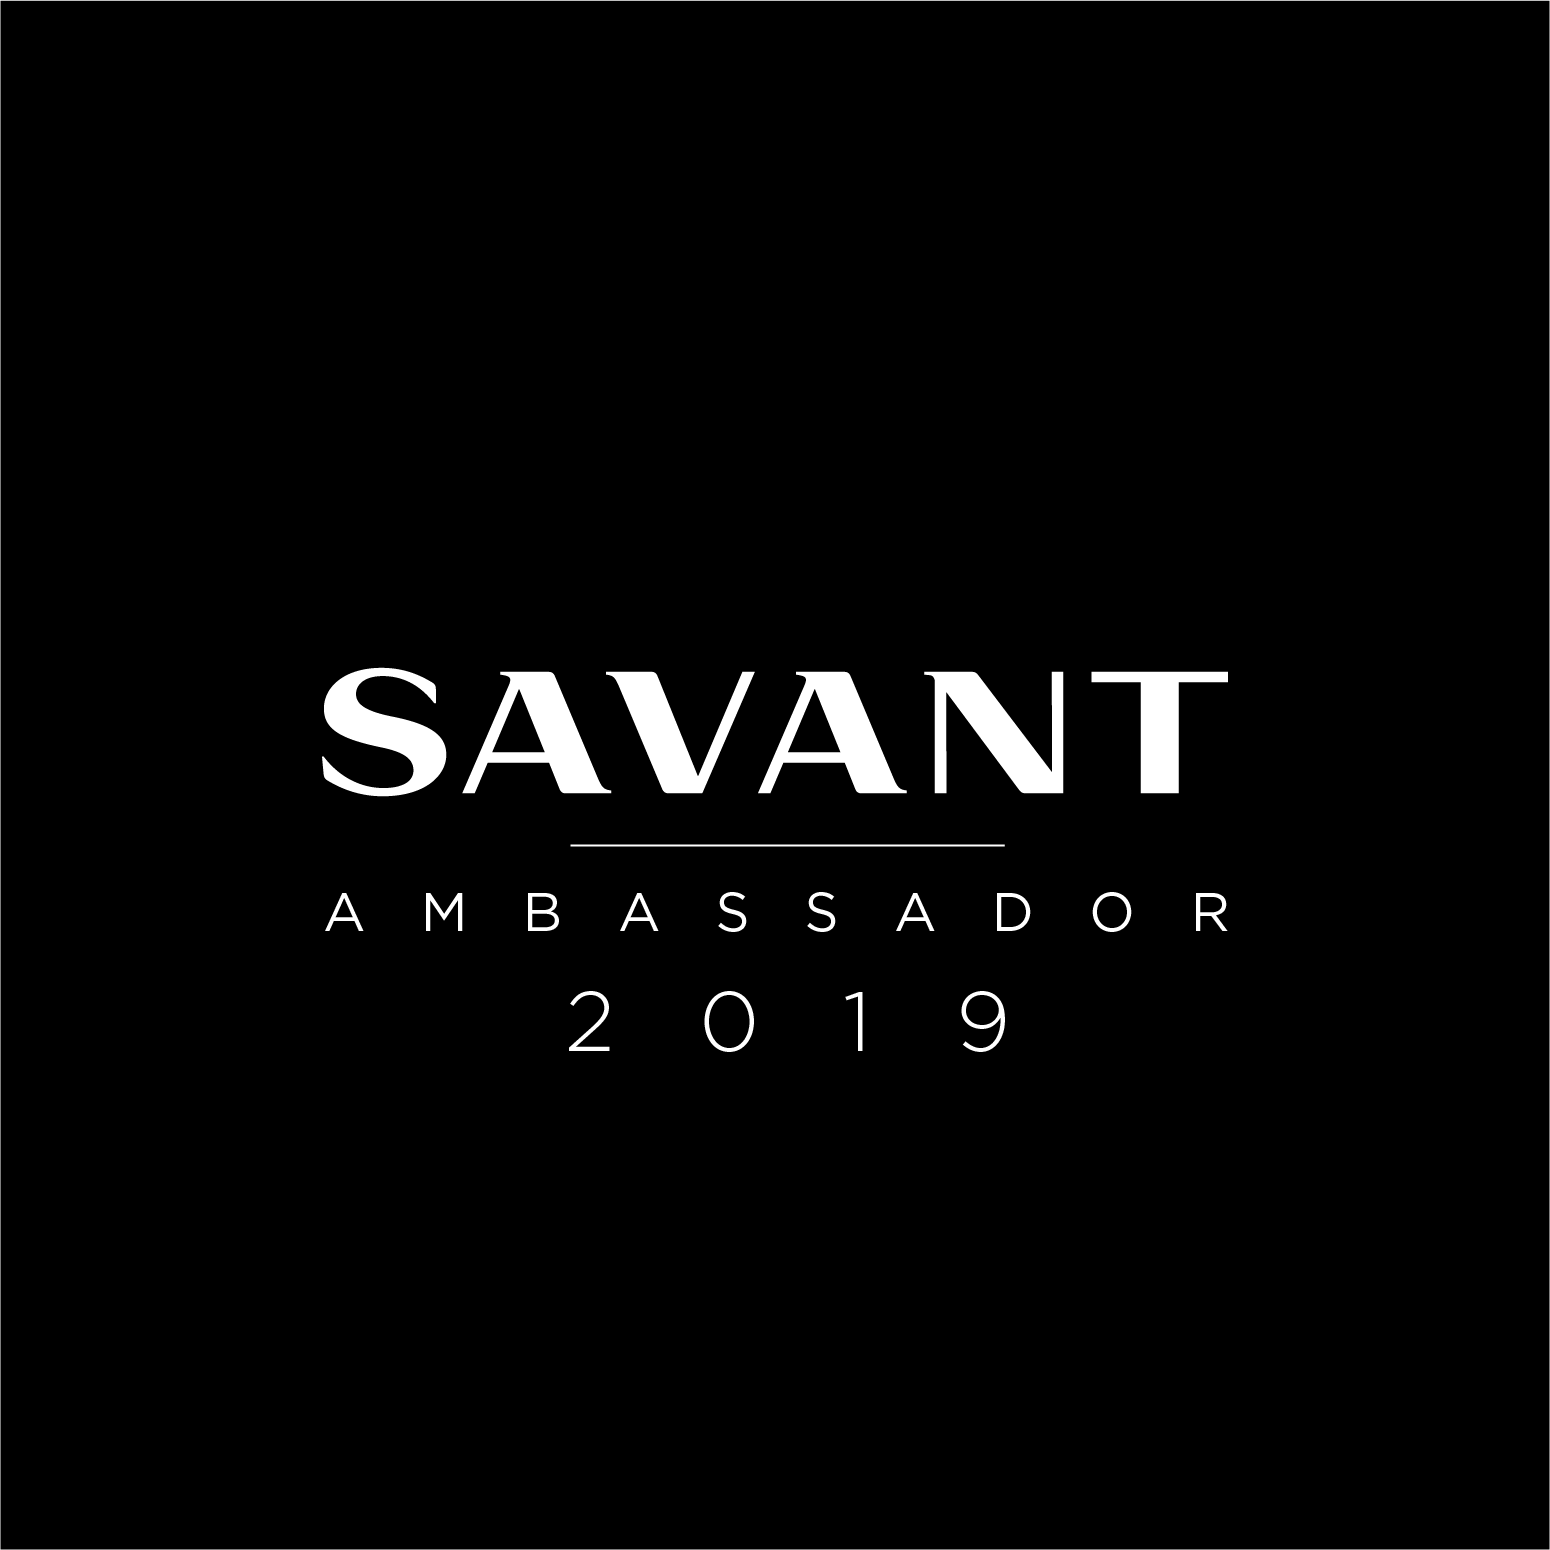 Recognition - We are very excited to become a certified Savant Ambassador. We are honored to have the opportunity to work closely with Savant on new product and give our honest feedback. Home Theater of Long Island strives for excellence on each and every project that we deliver!